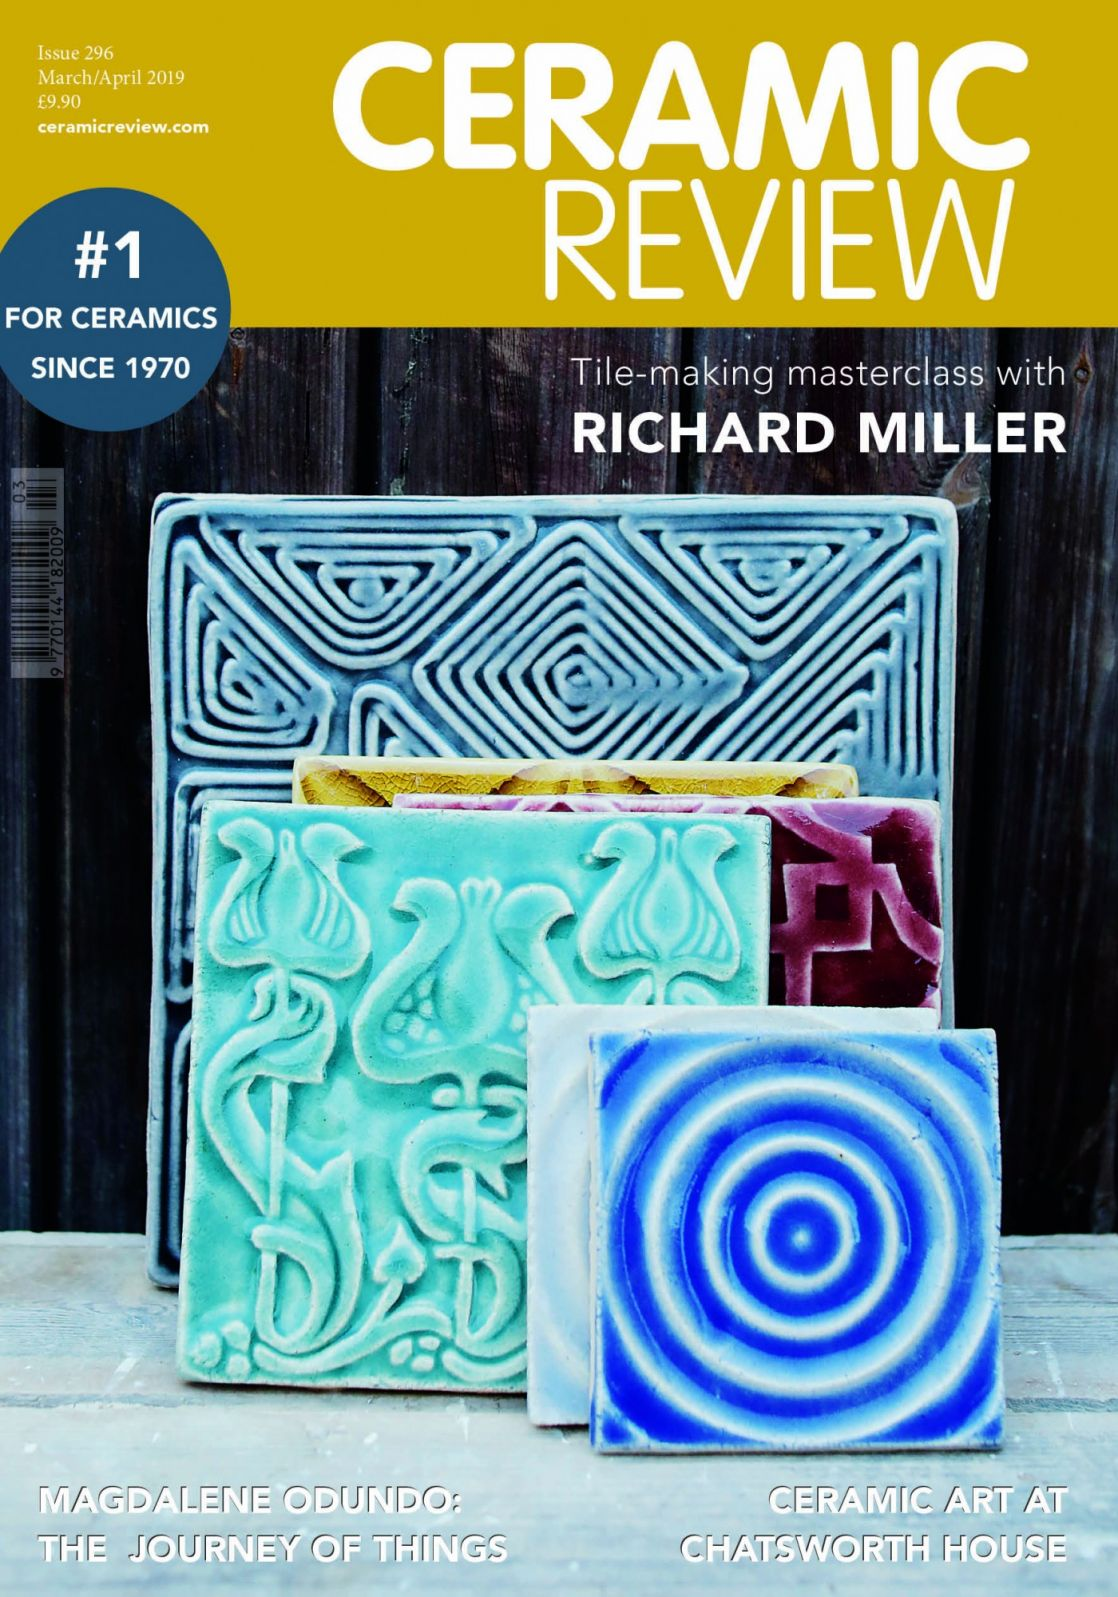 Ceramic Review CR issue 296 March April 2019